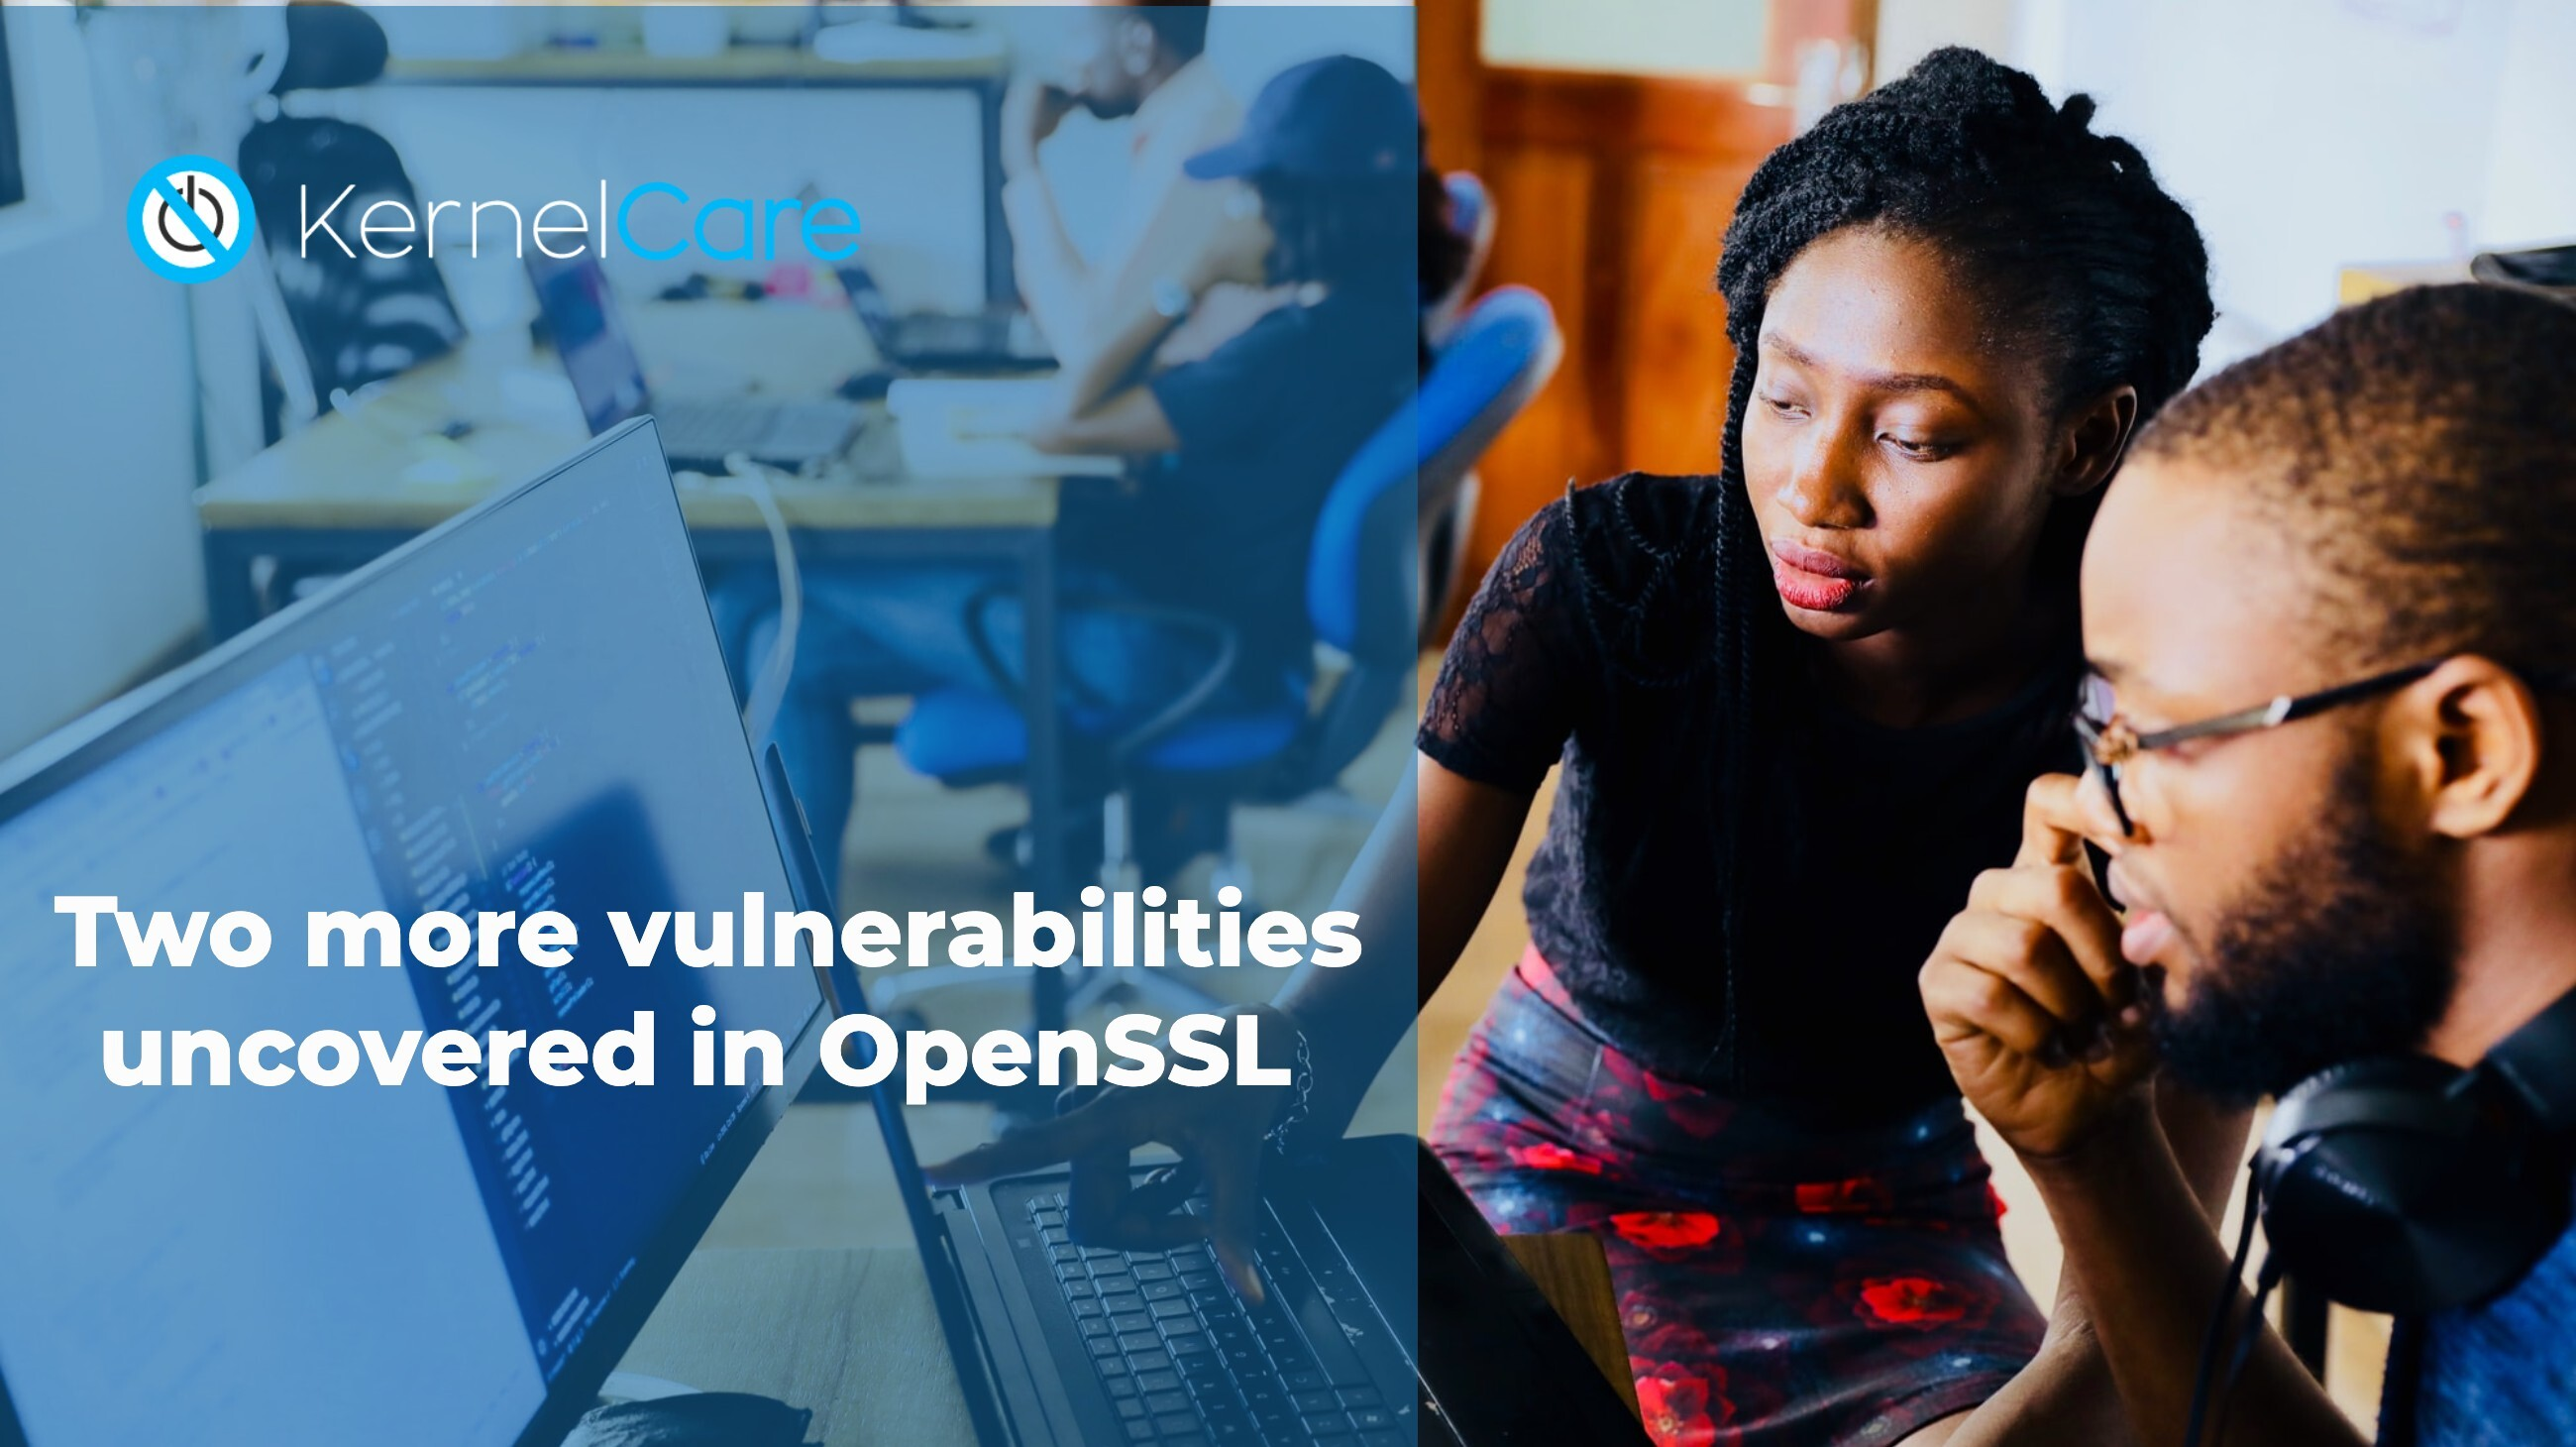 Two more vulnerabilities uncovered in OpenSSL